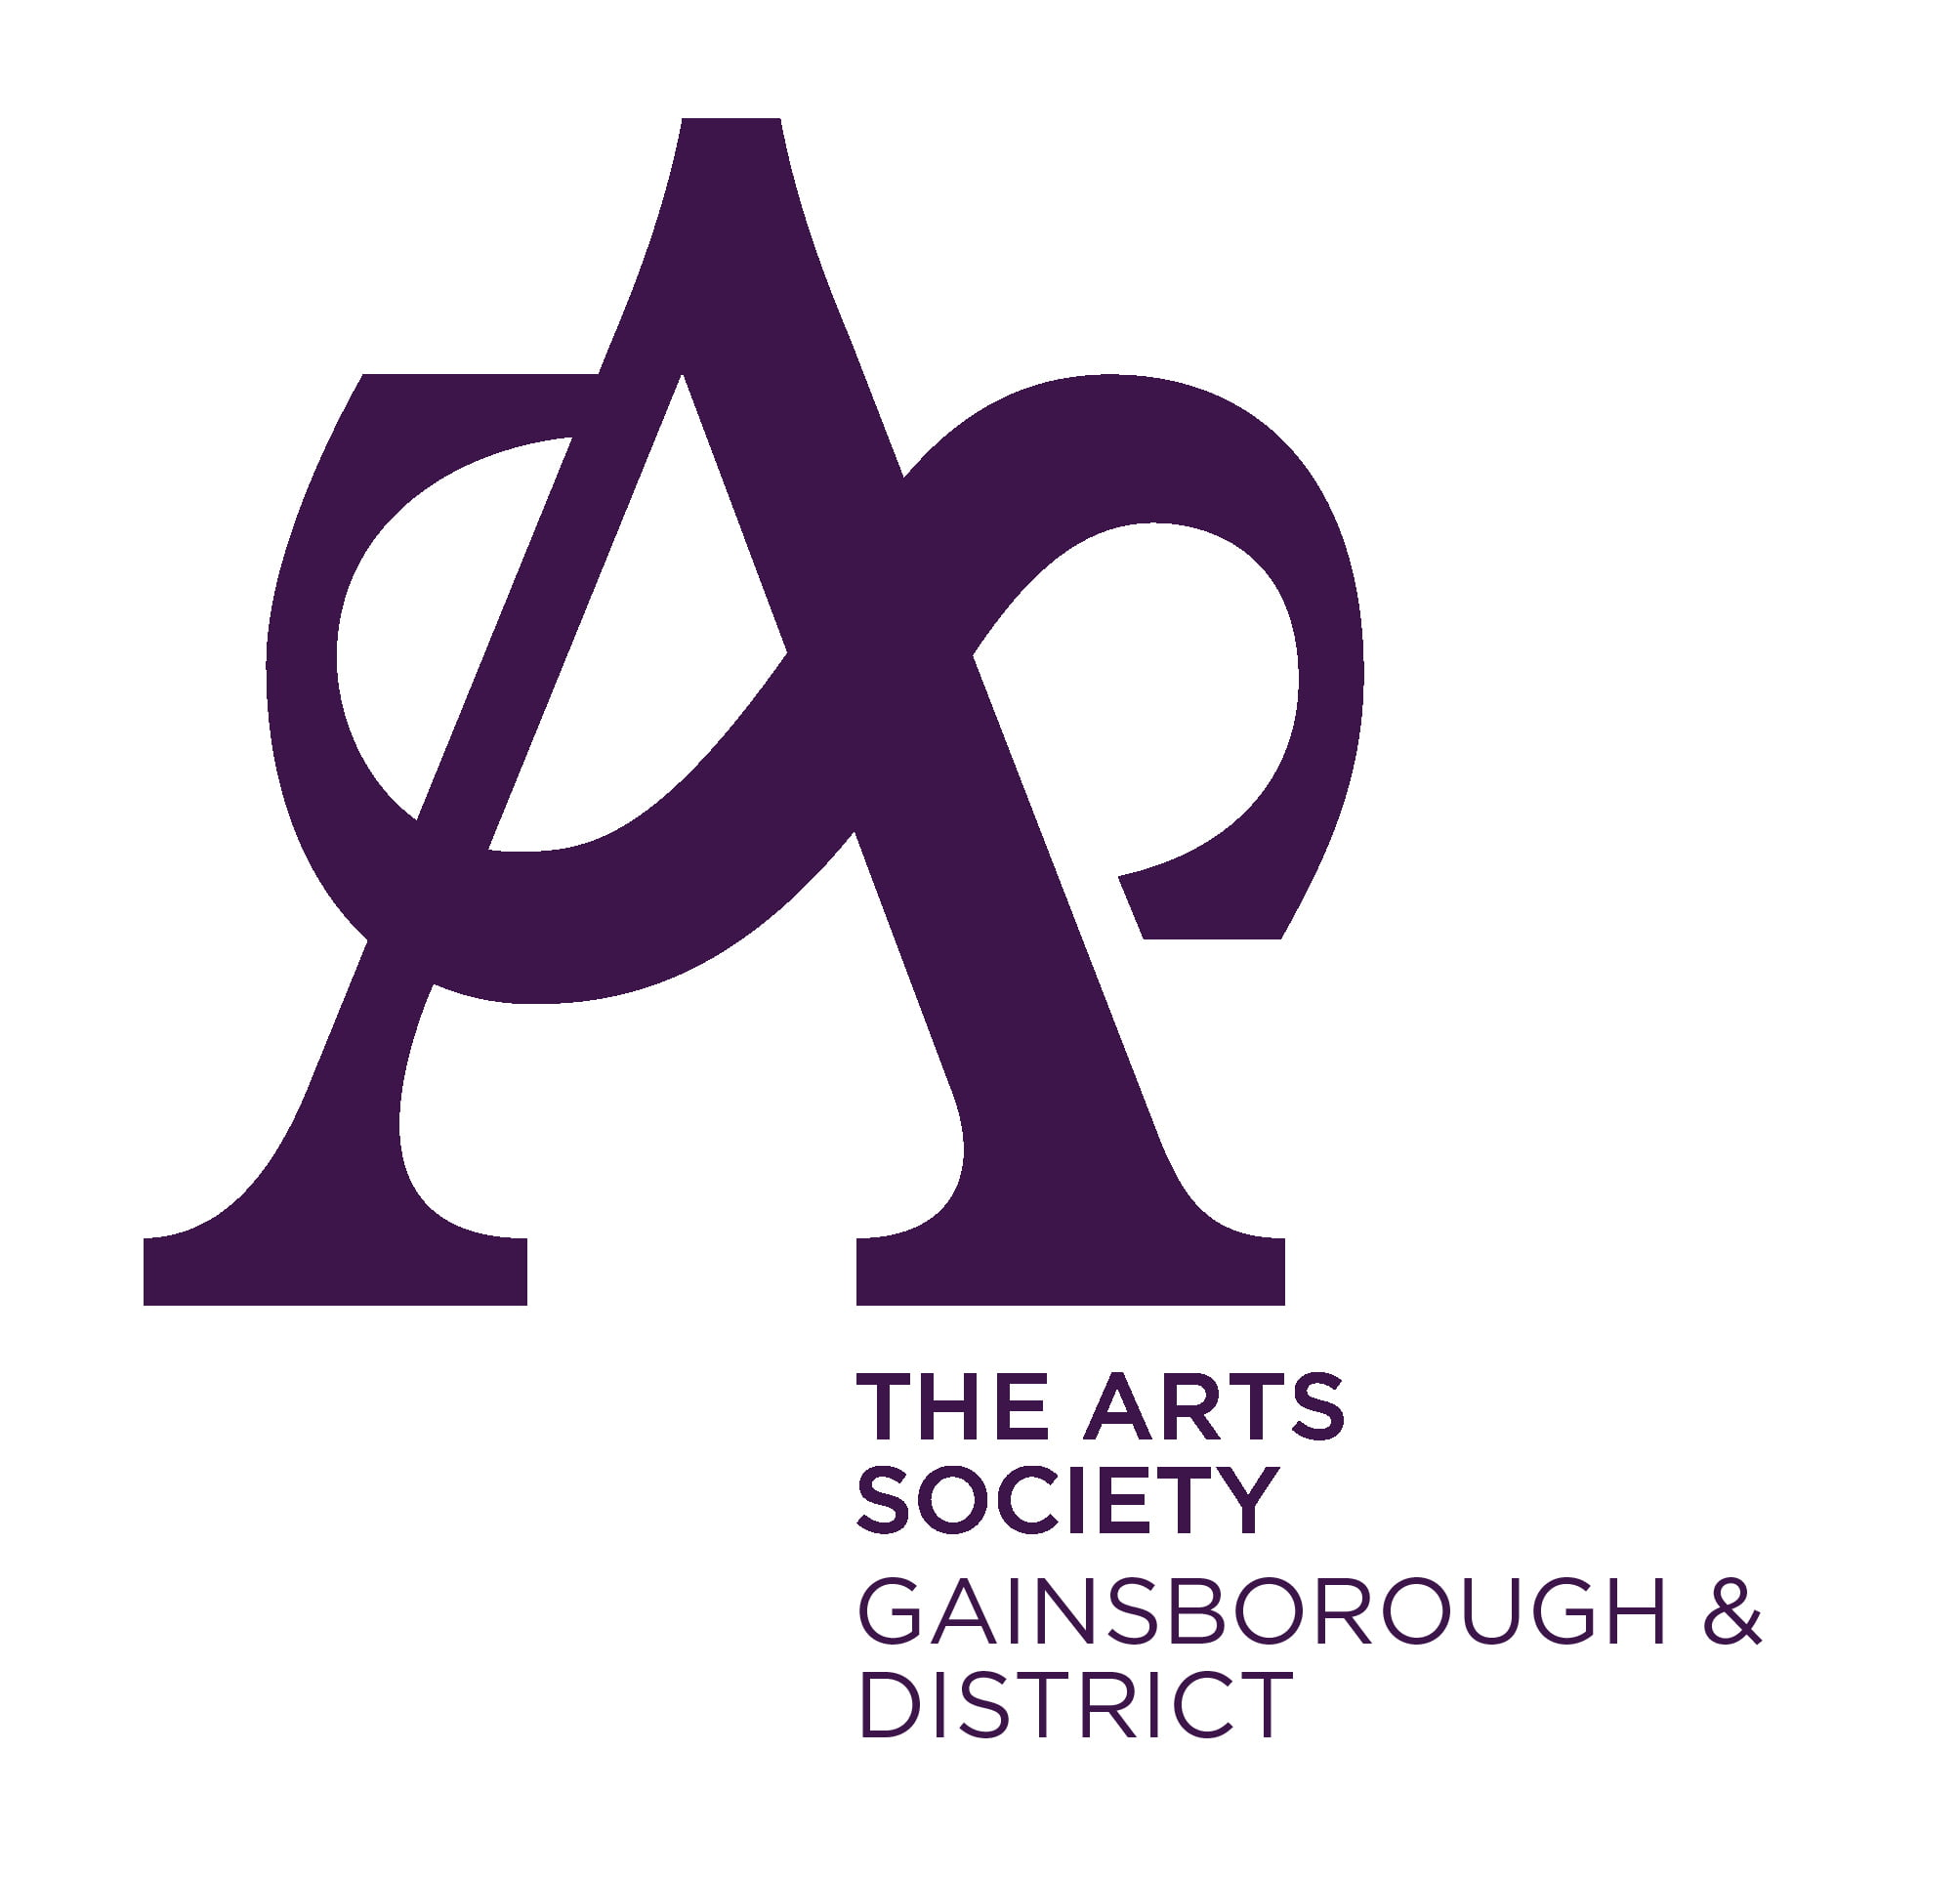 The Arts Society Gainsborough & District